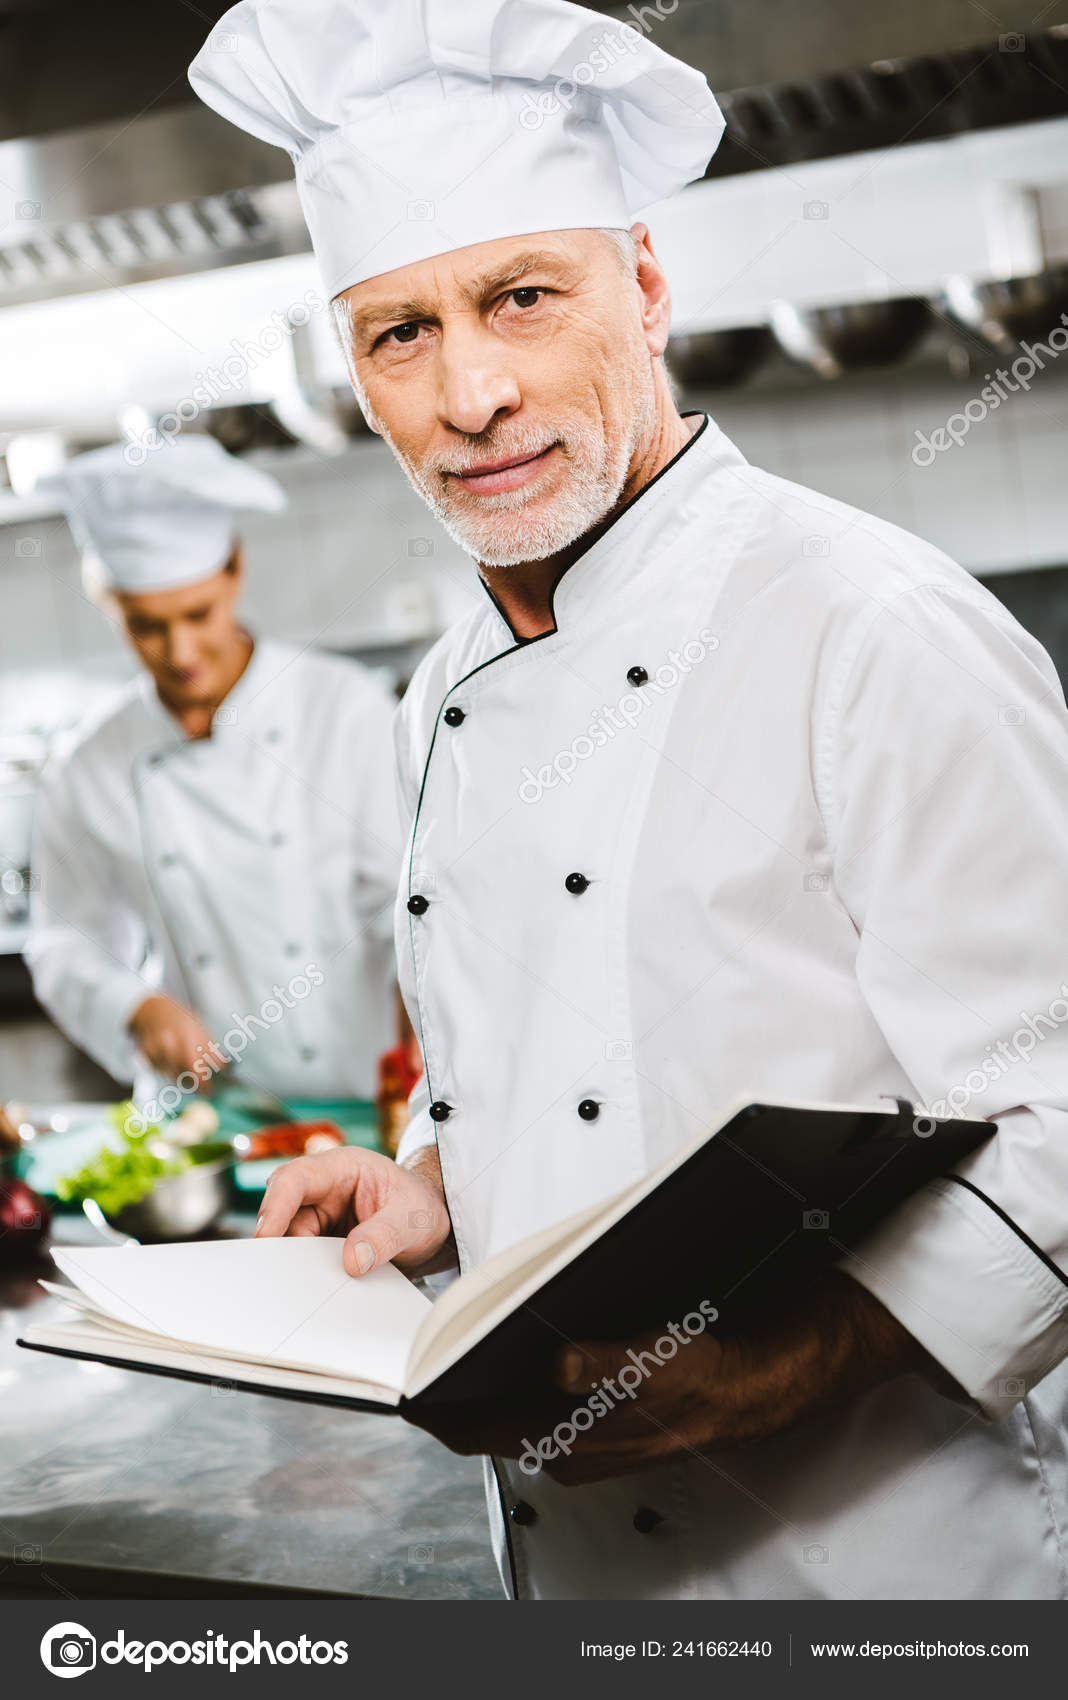 Male Chef Uniform Hat Looking Camera Holding Recipe Book